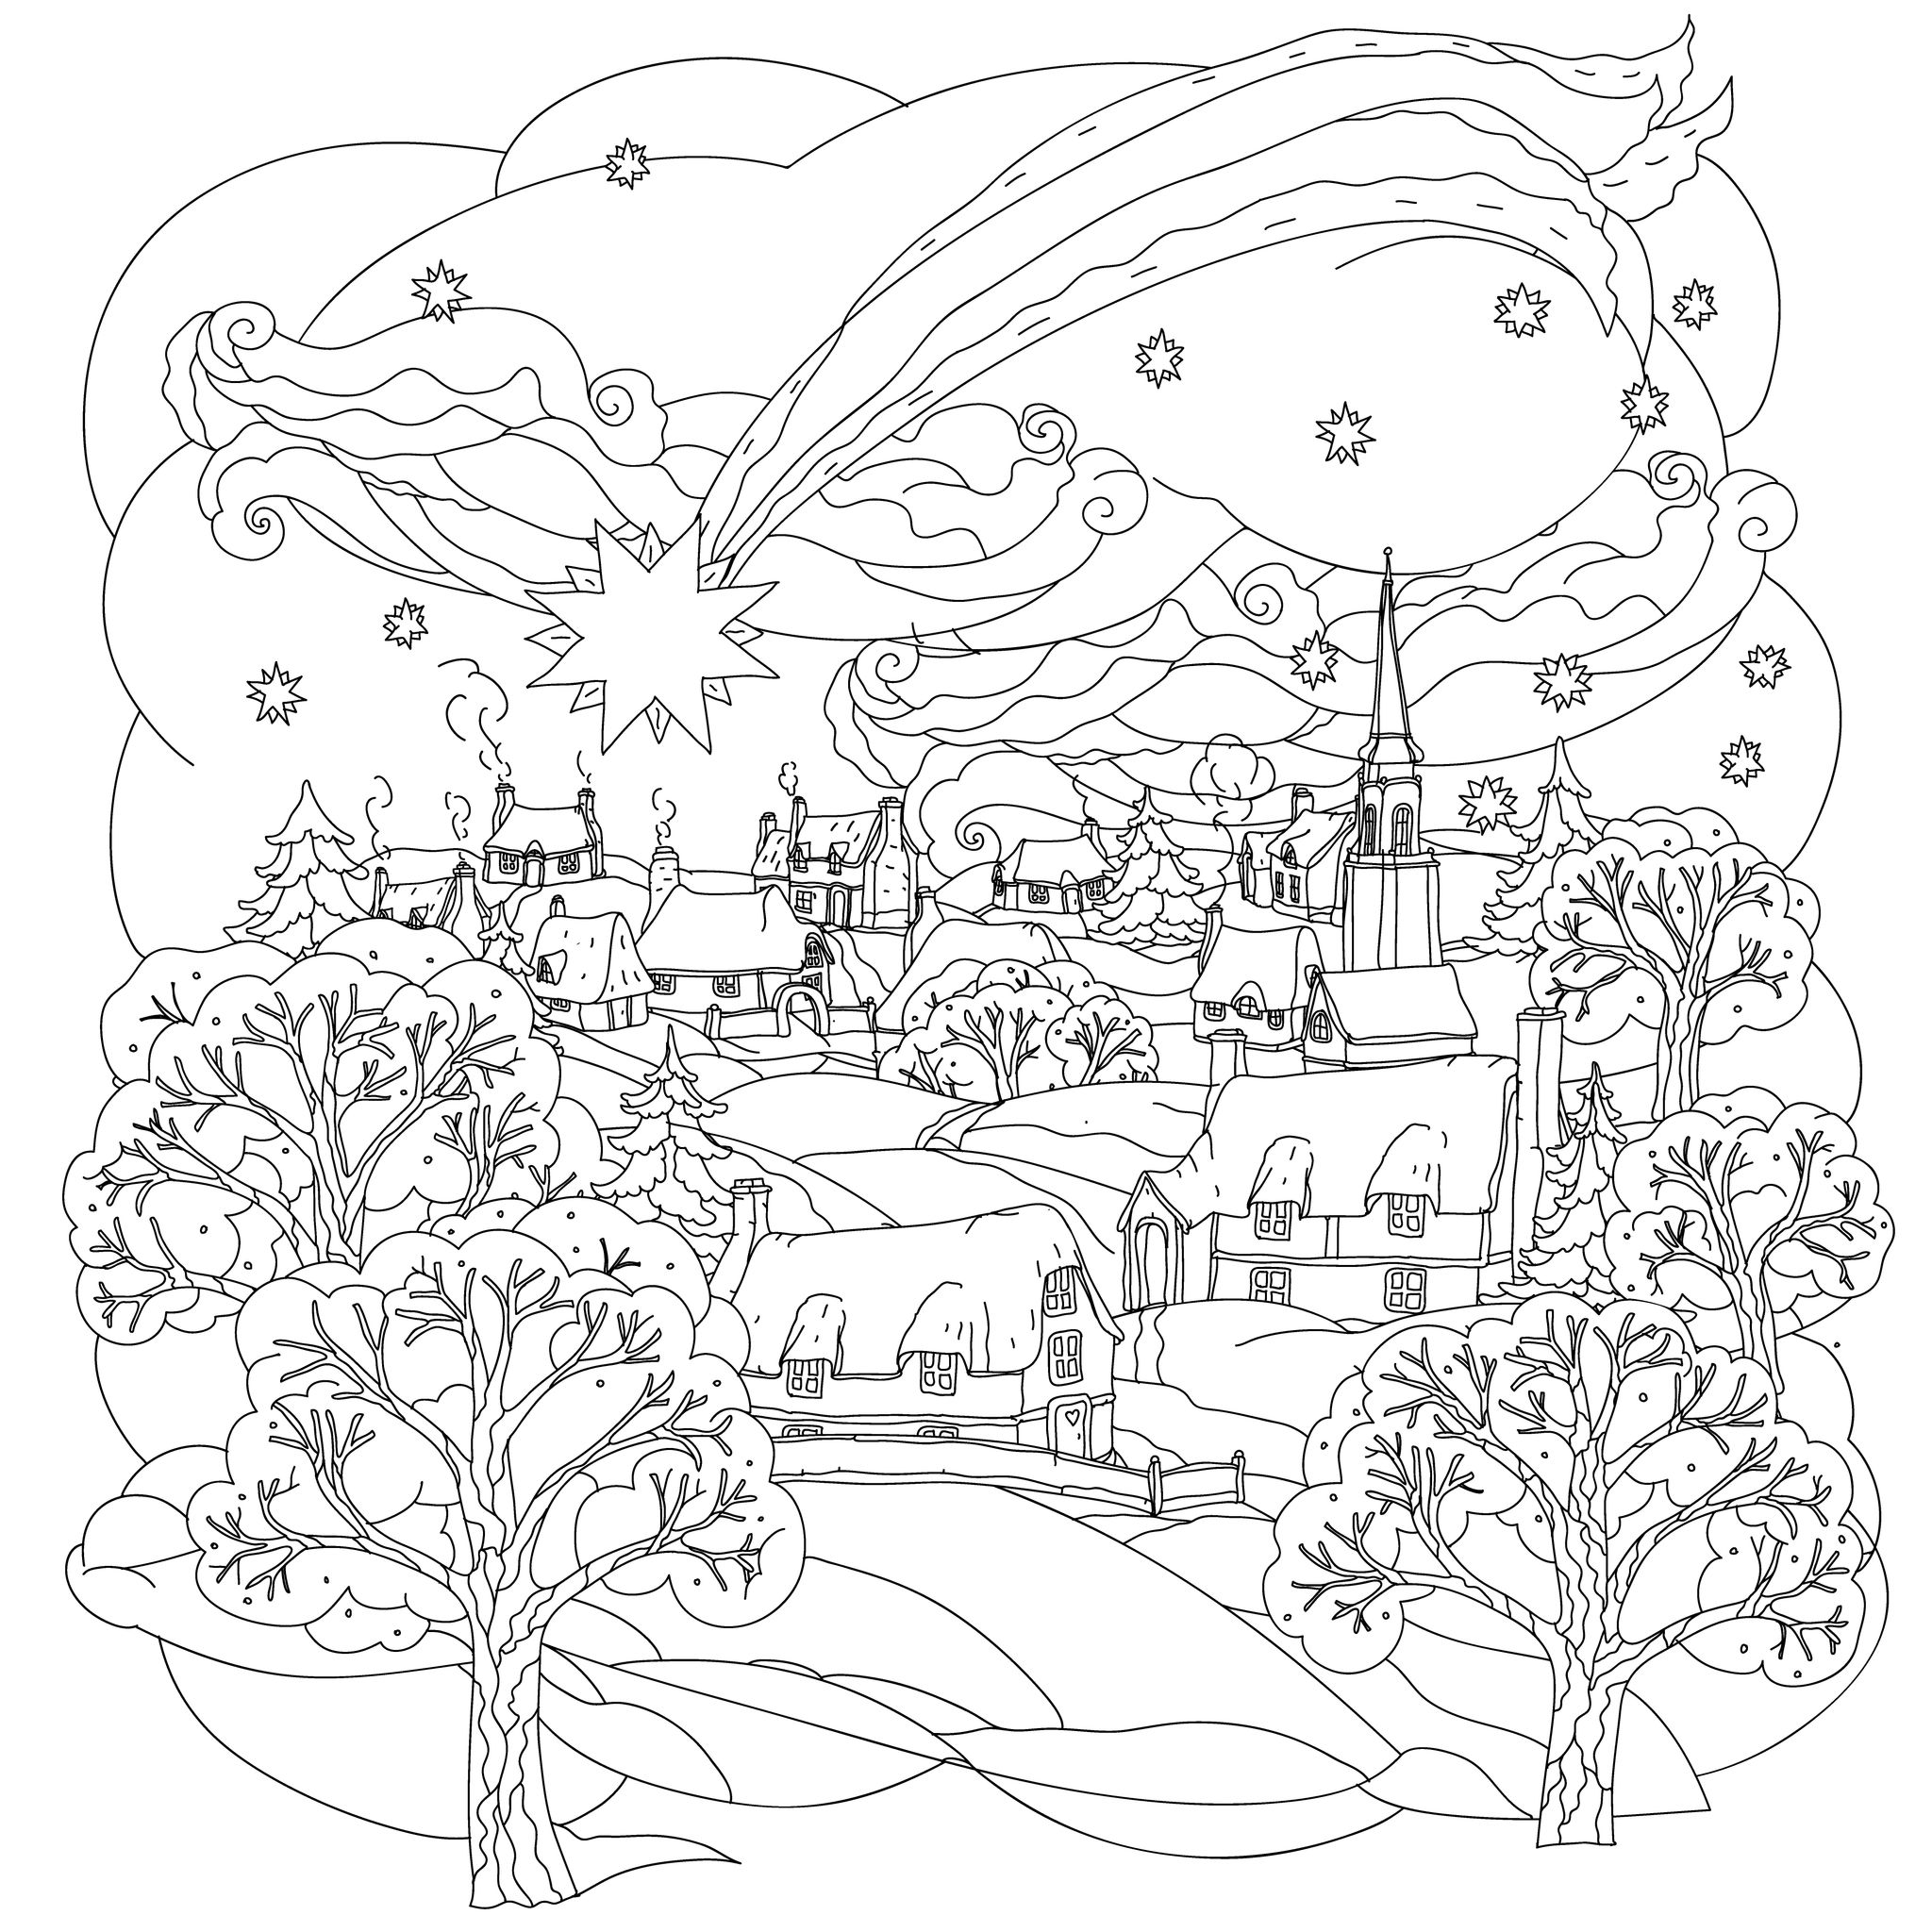 Noel village coloriages de no l coloriages enfants biboon - Noel coloriage ...